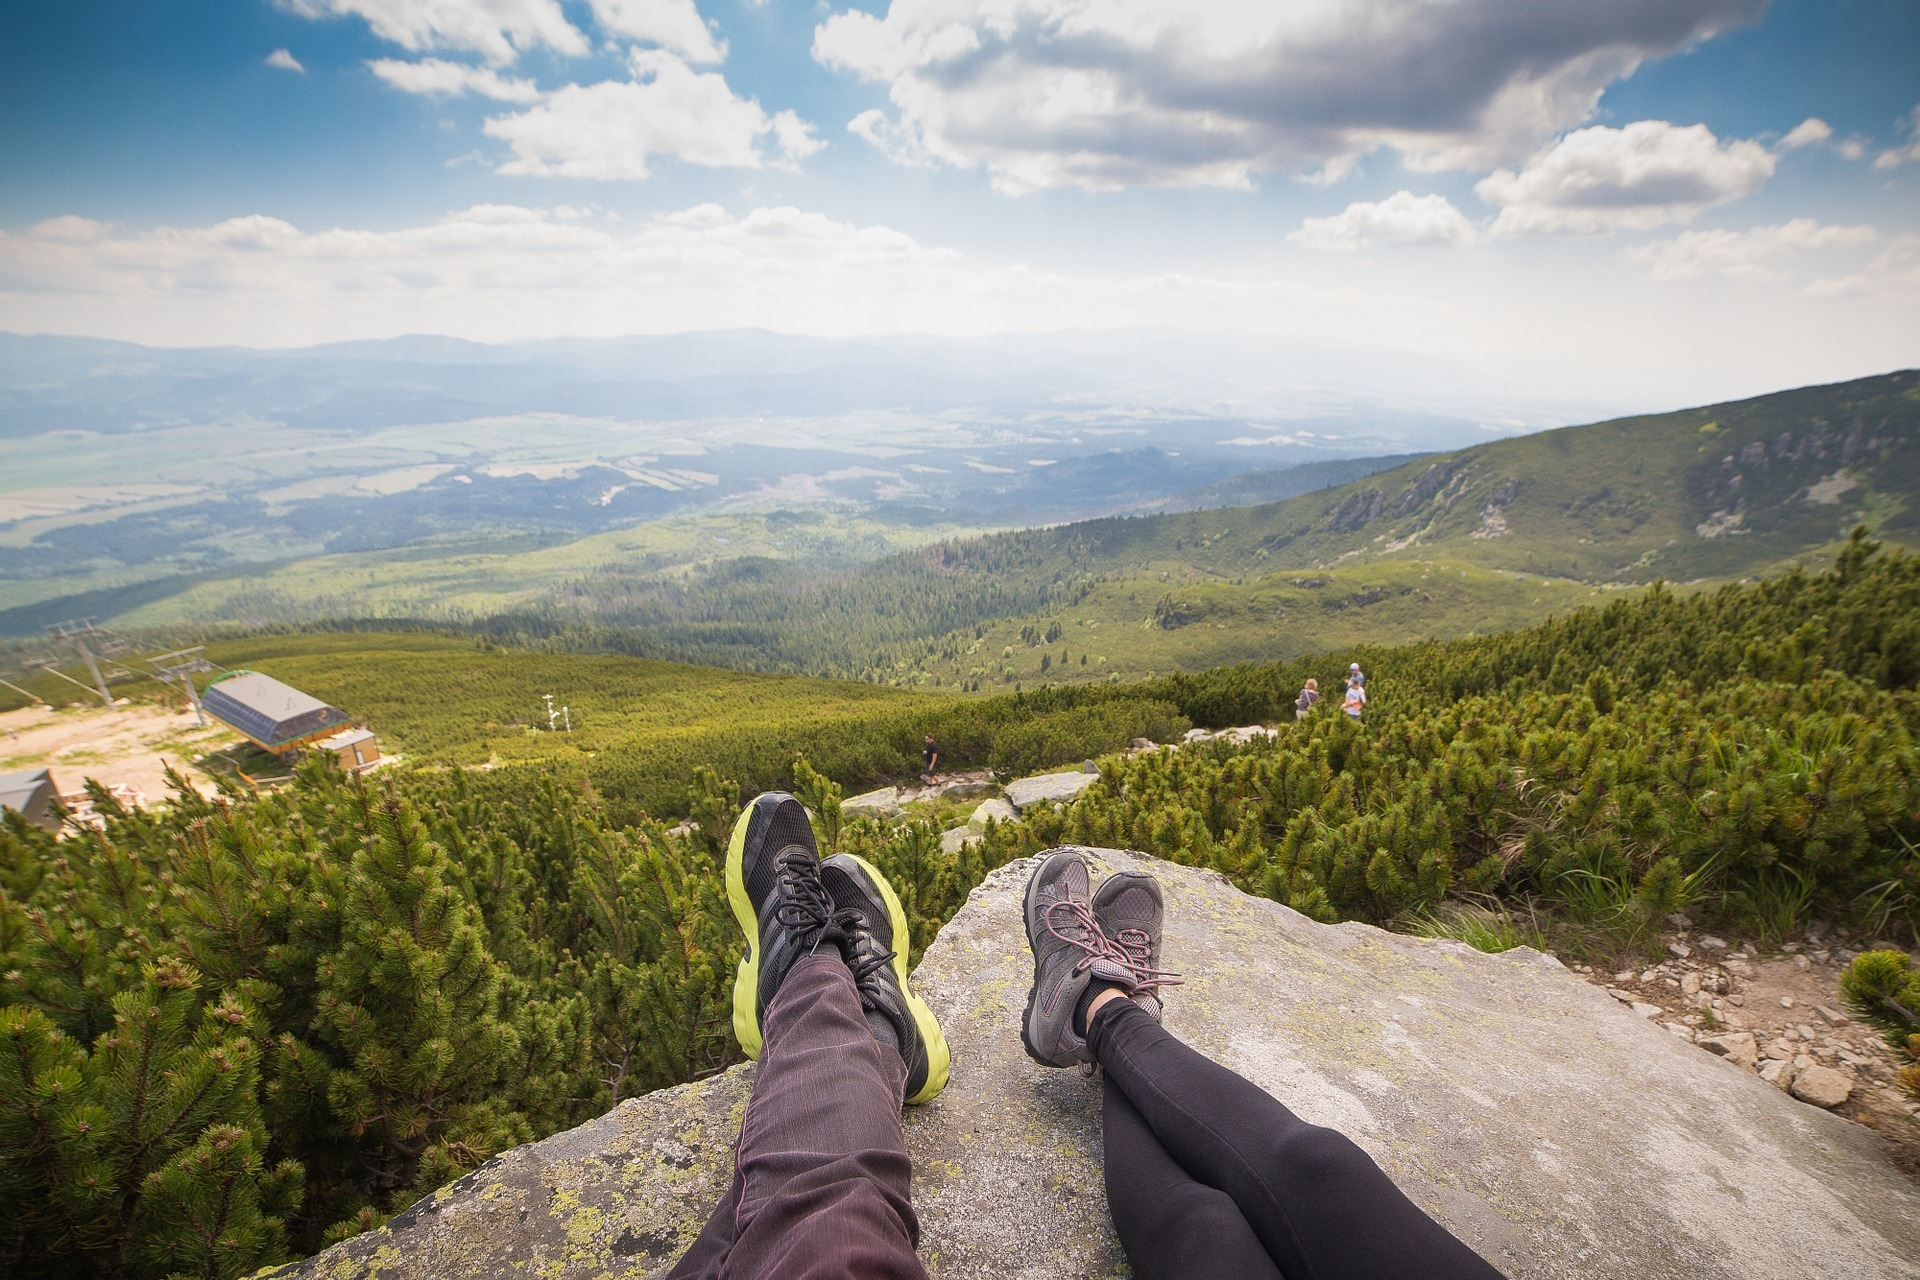 Two sets of feet with legs on a boulder with a view of vast trees in the distance